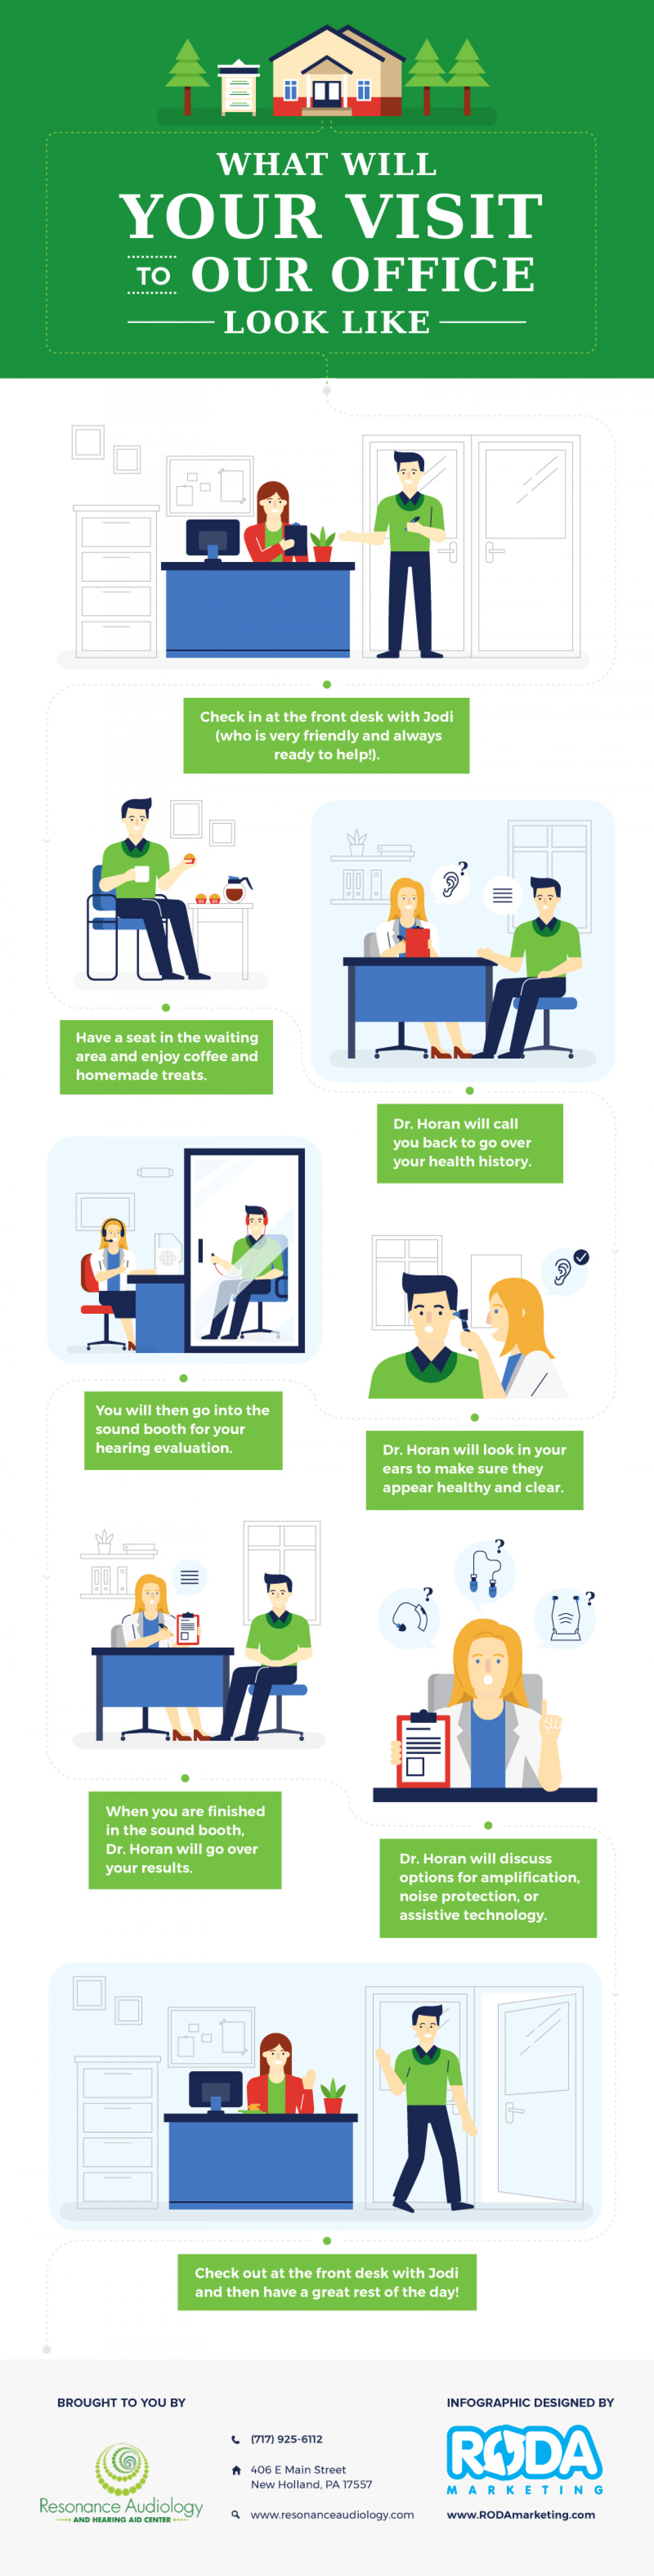 What Your Visit To Our Office Will Look Like Infographic